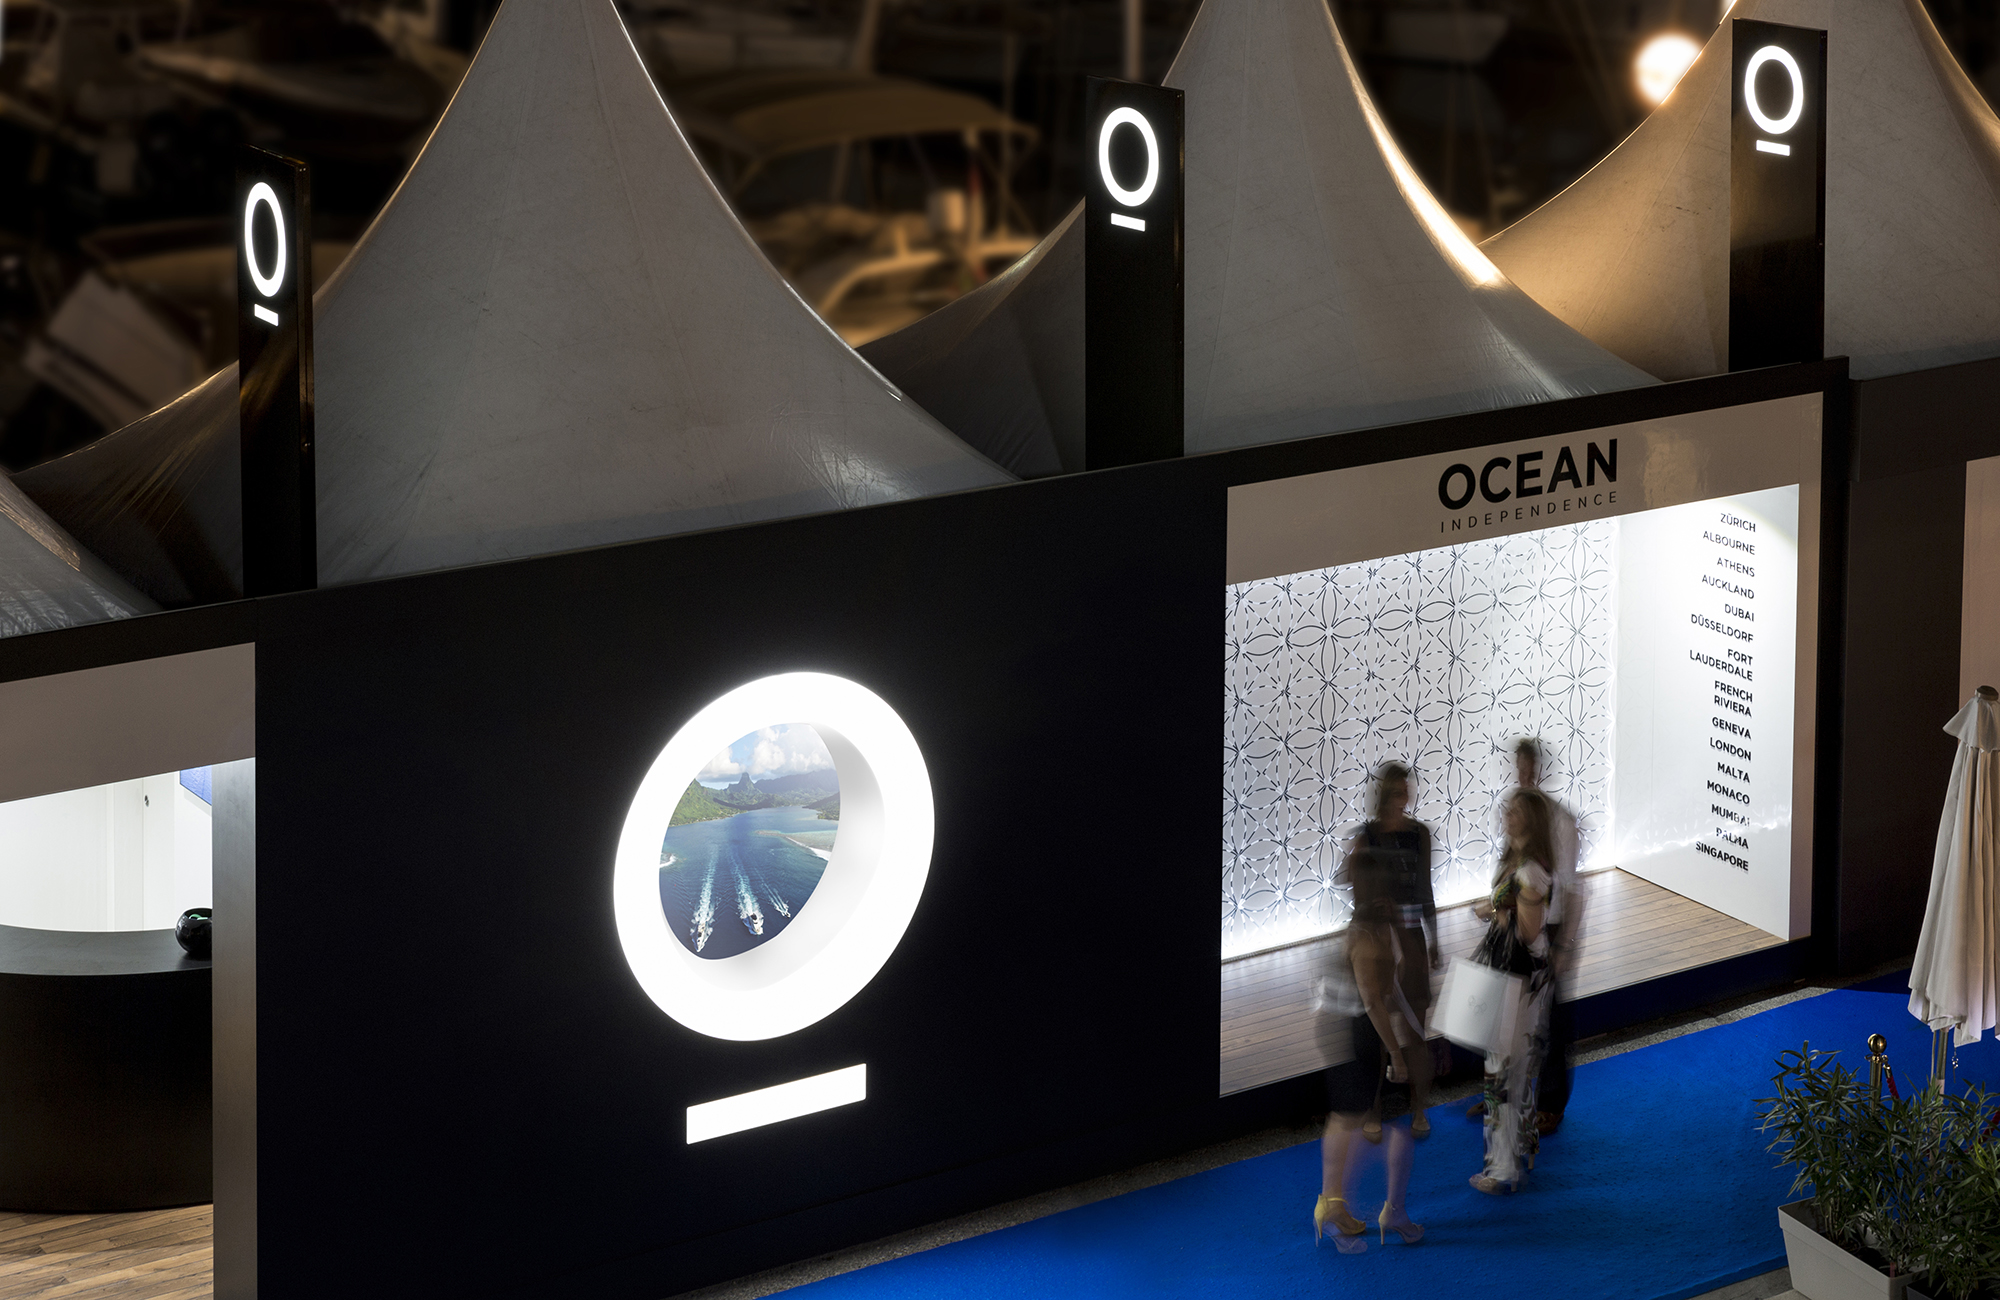 The night time experience for Ocean Independence at Monaco Yacht Show 2016, photographed by Big Dog Productions.